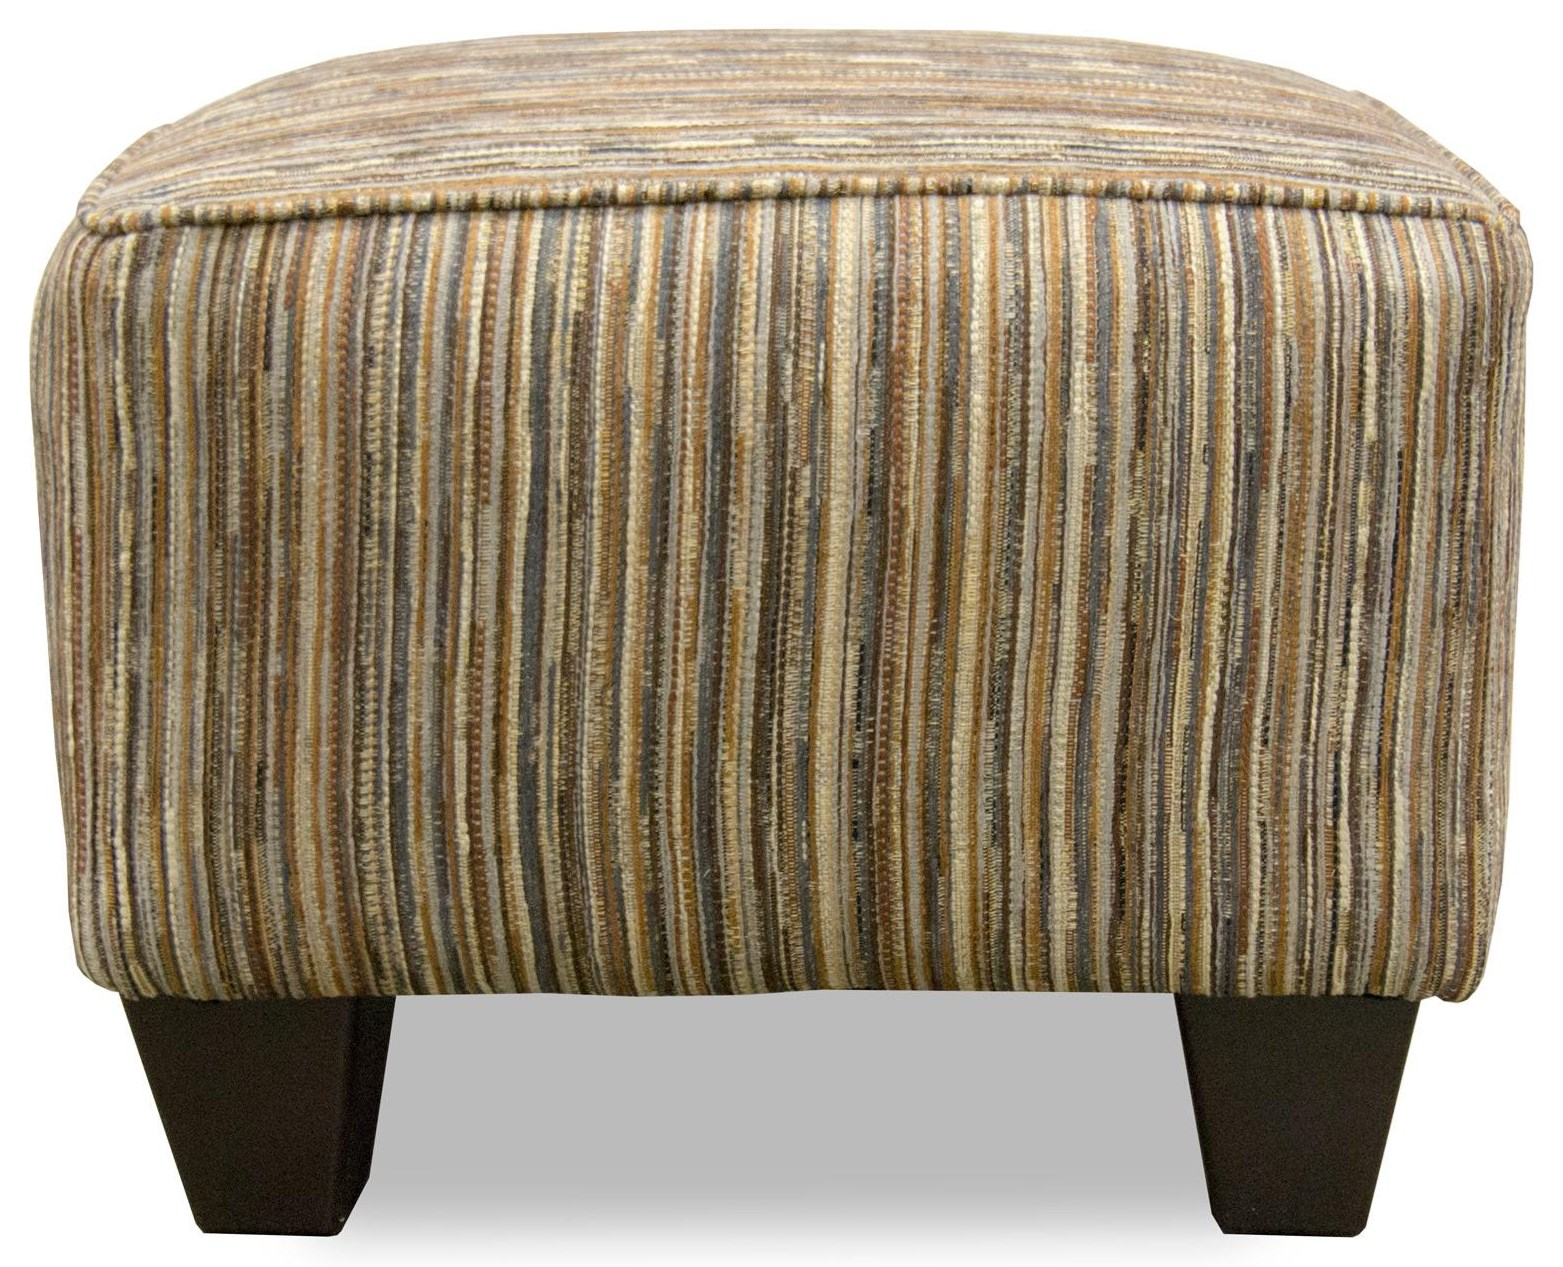 Corinthian Alton Awesome Cornerstone Accent Ottoman - Item Number: AO2029D